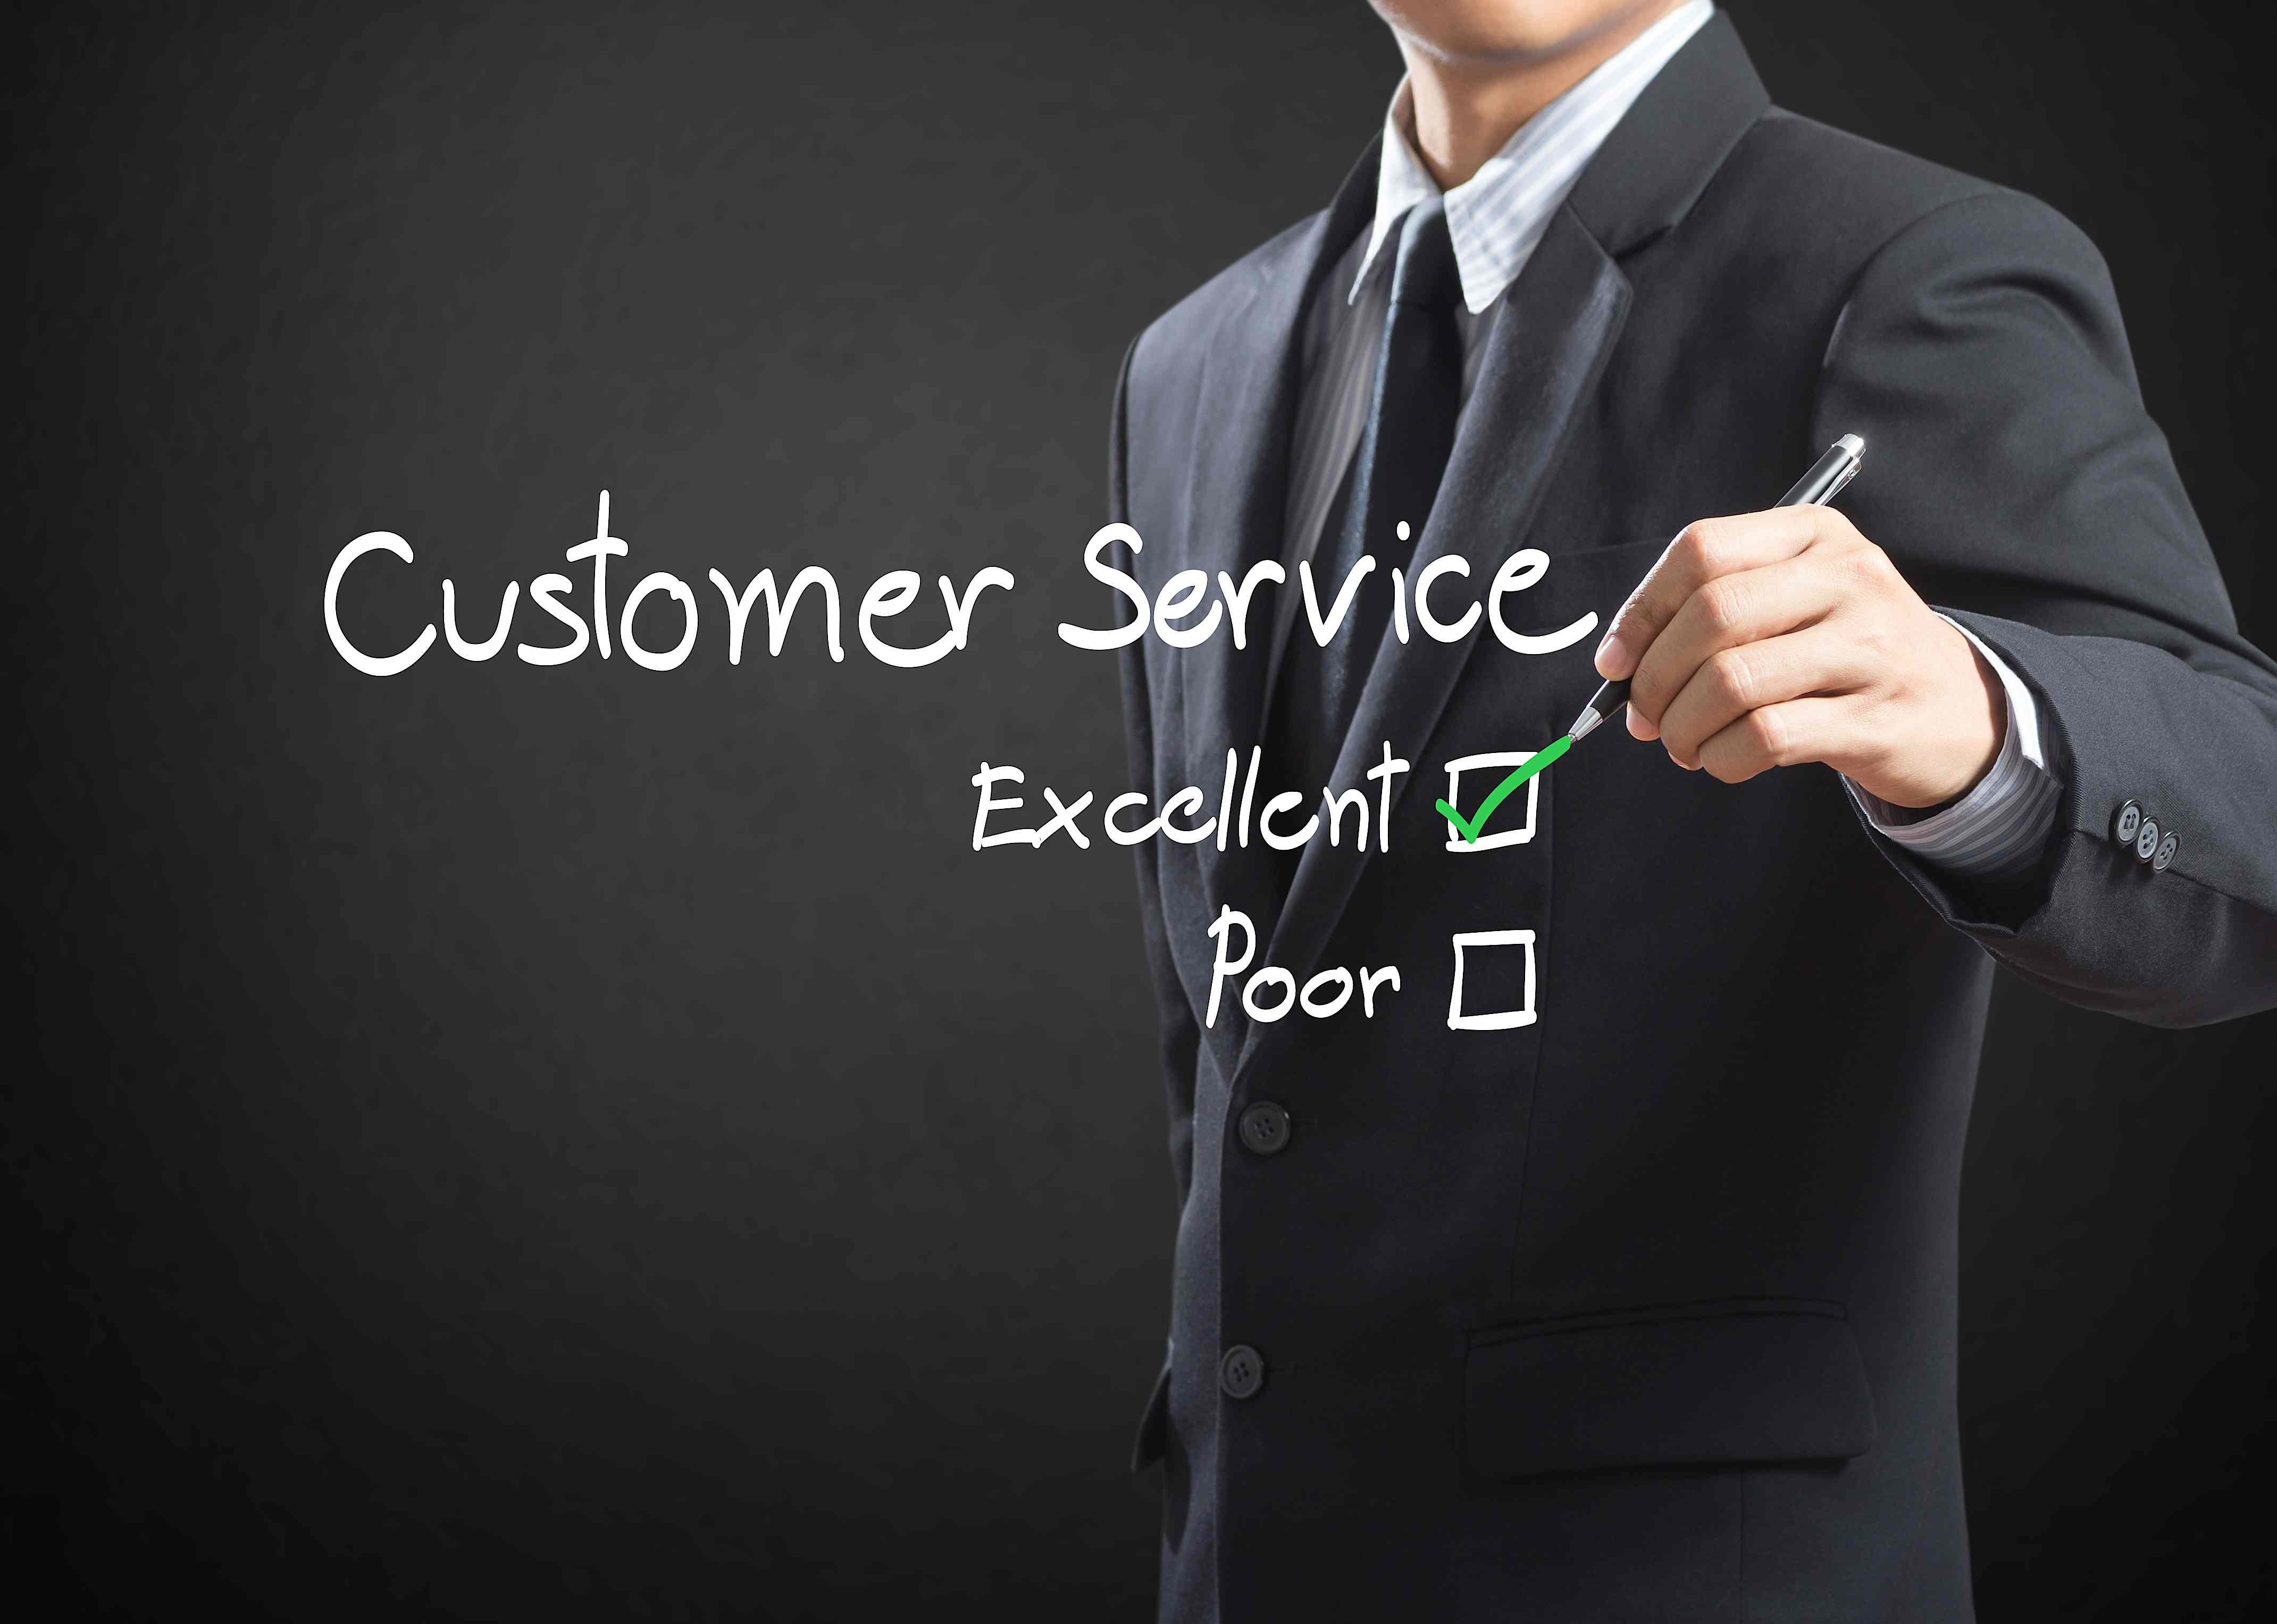 excellent customer service images customer service excellence